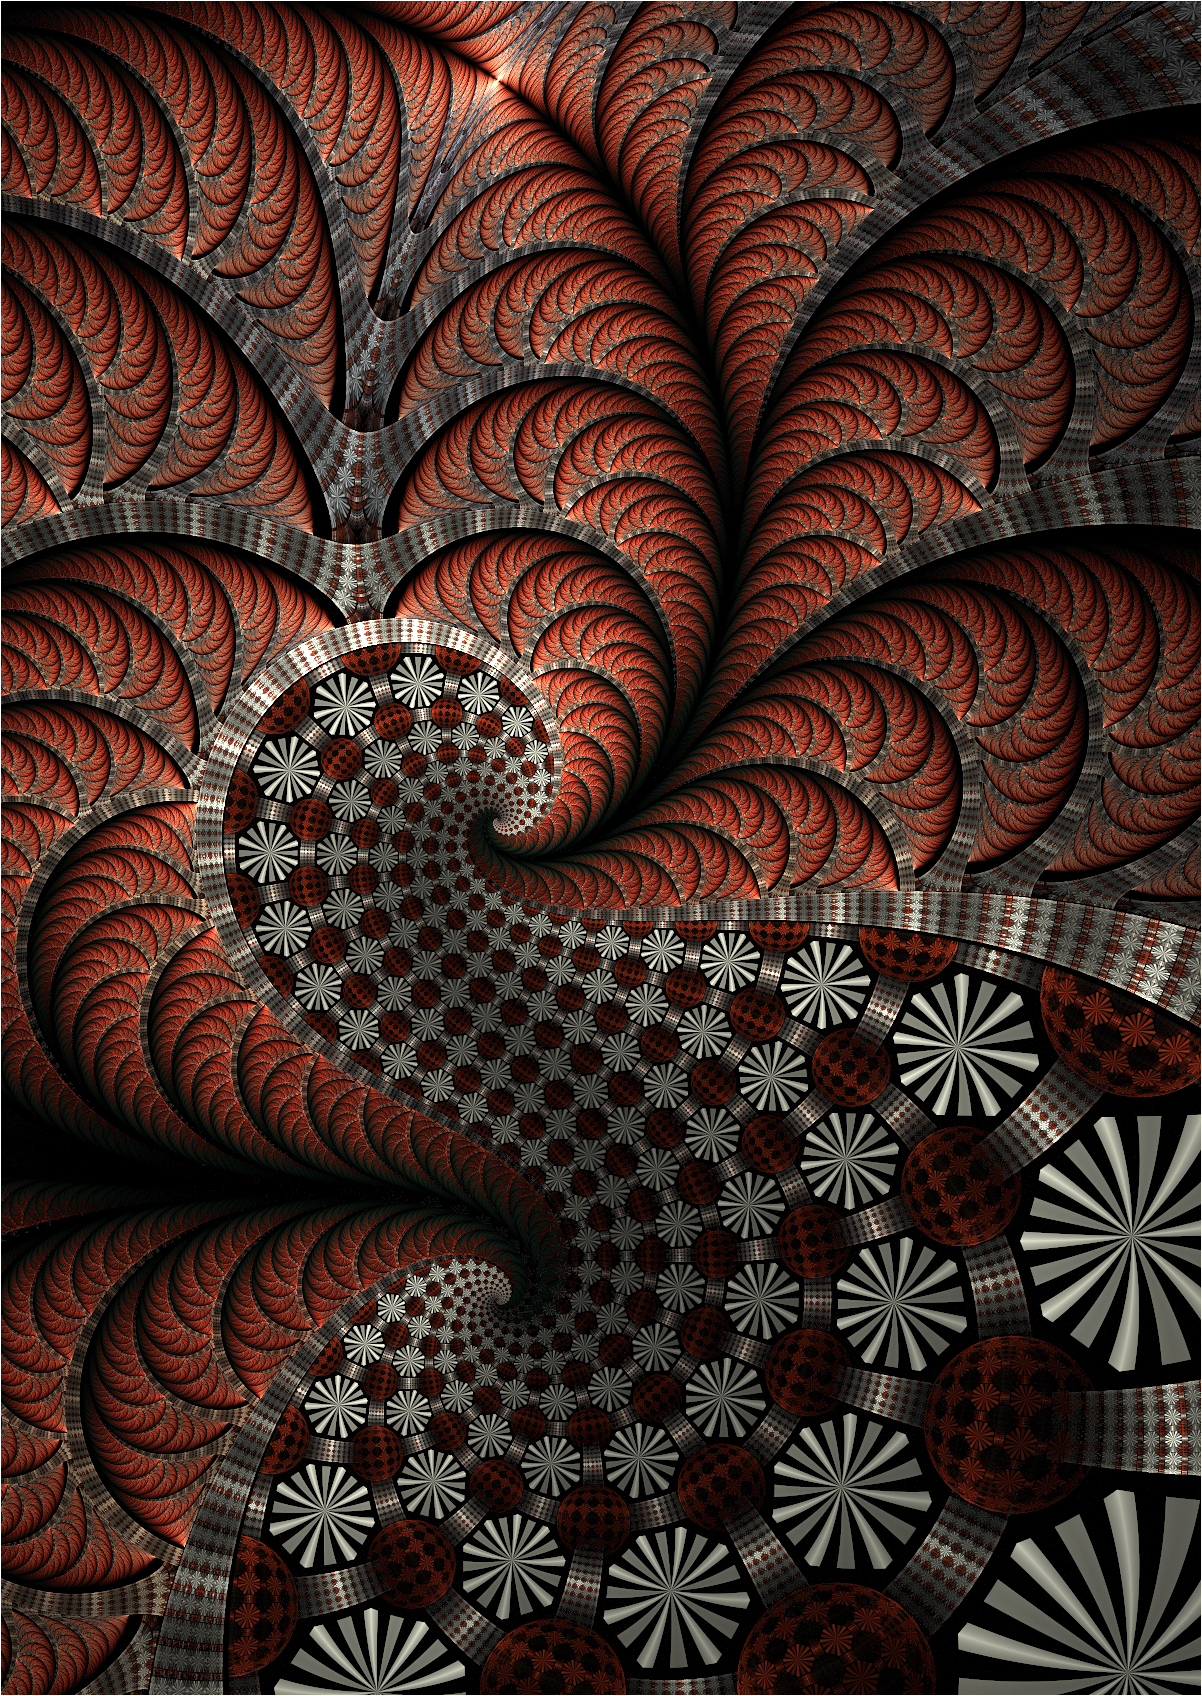 Opposites attract by FractalDesire